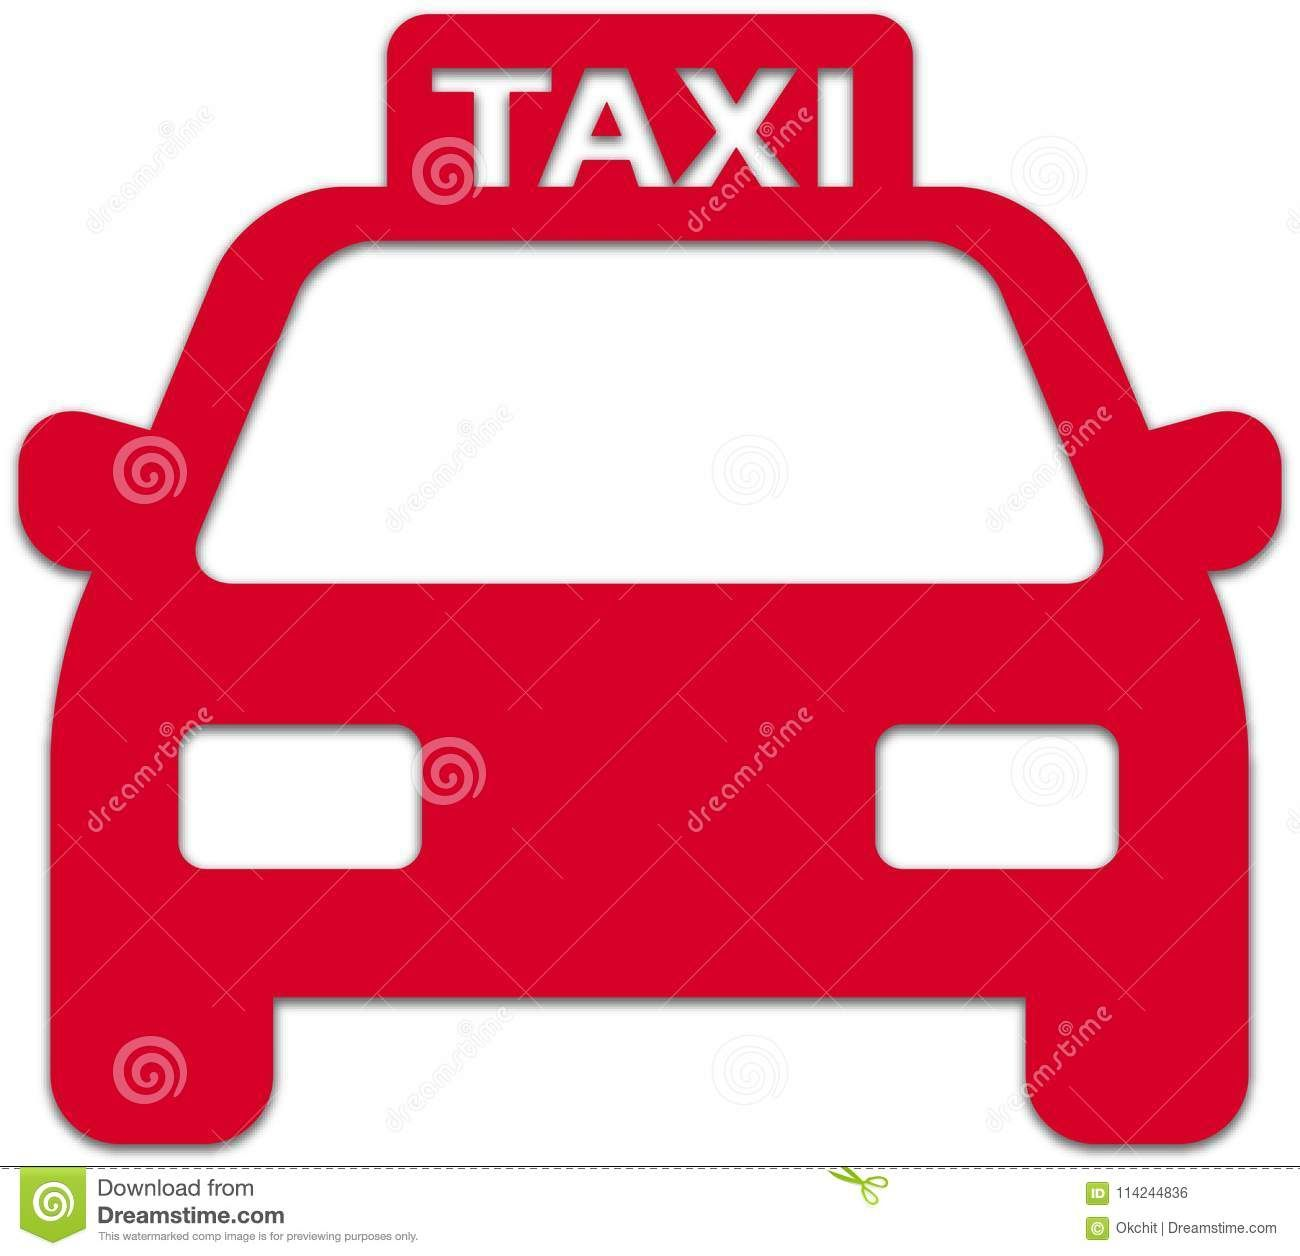 Illustration About Frontal Red Taxi Cab Vector Car Icon Illustrations Illustration Of Graphic Frontal Automobile 114244836 Car Icons Taxi Cab Car [ 1256 x 1300 Pixel ]